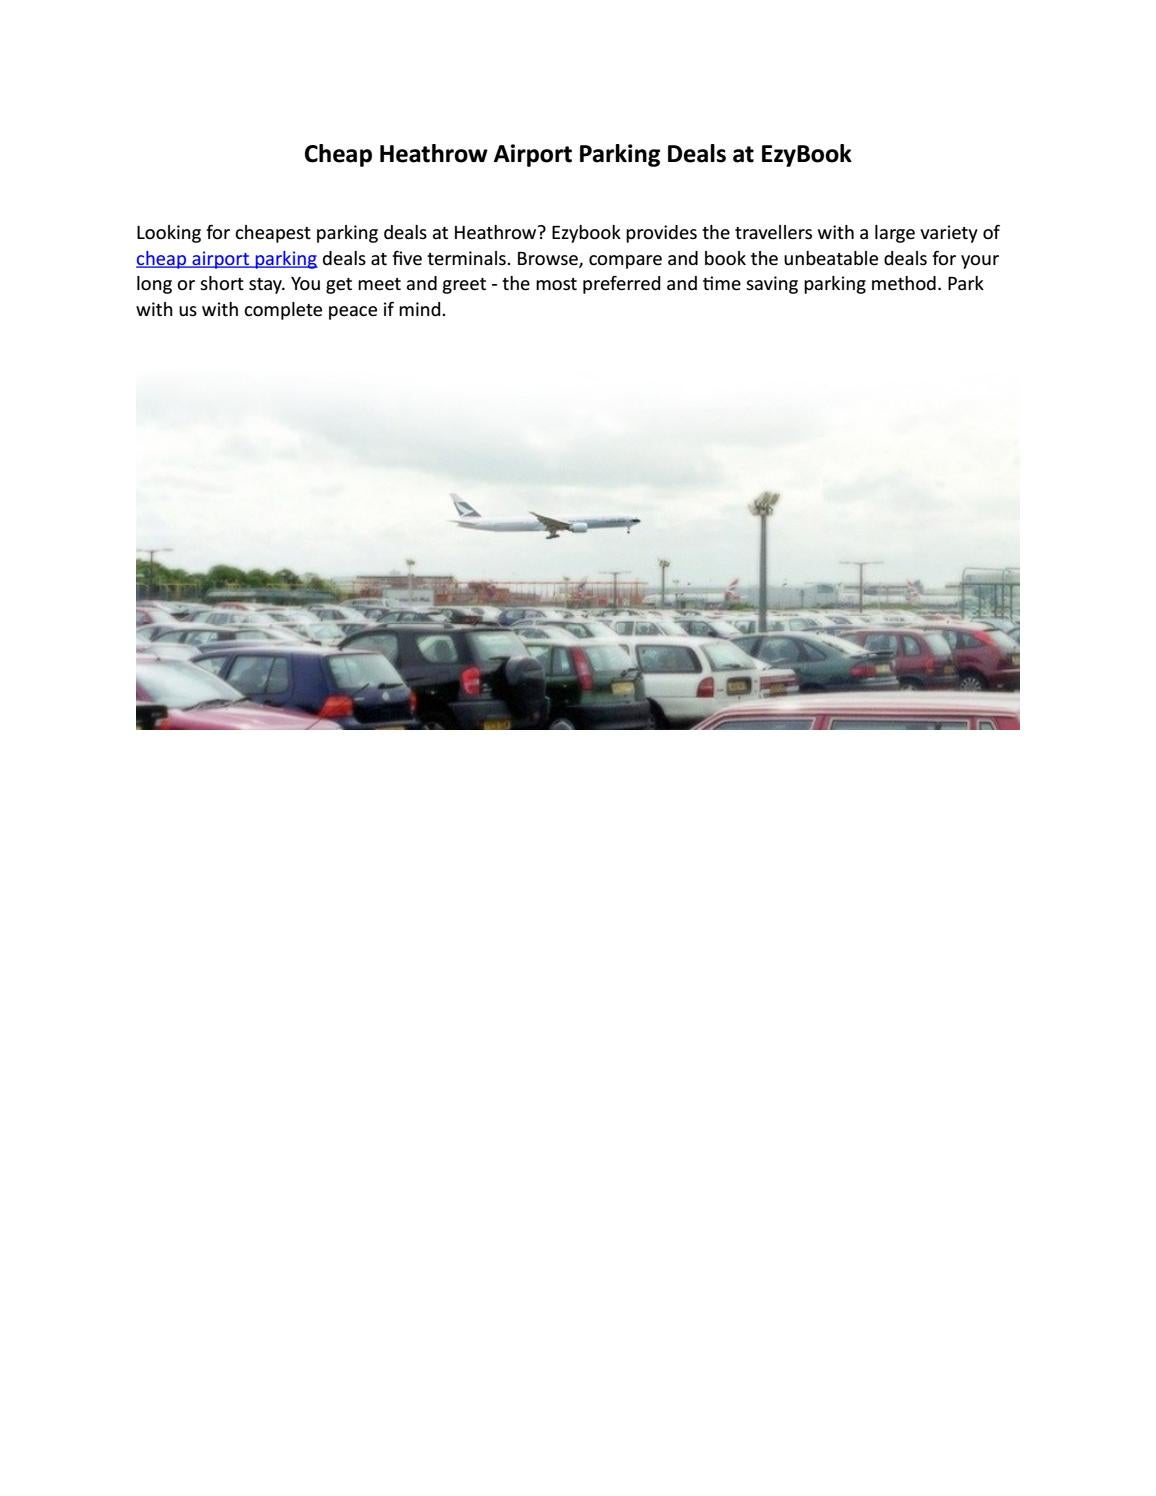 Heathrow airport cheap parking by thomas scott issuu m4hsunfo